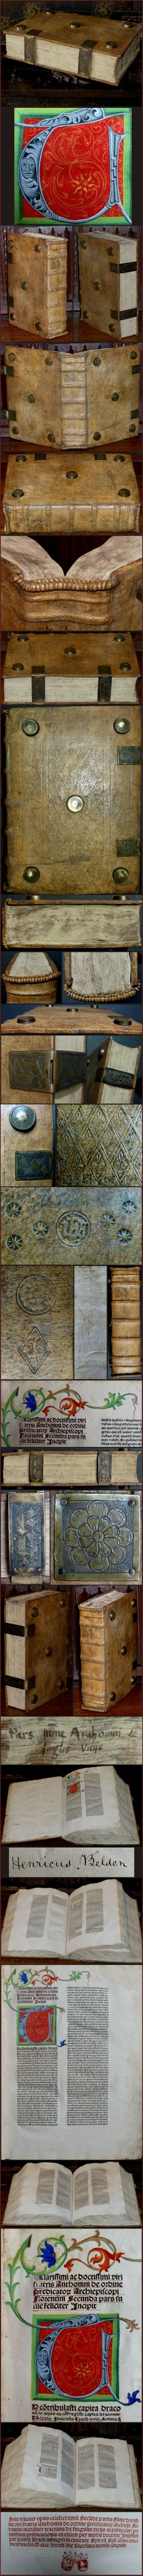 From ebay, one of Guttenberg's first bibles, illumination very similar to the instructions found in the Goettingen Model Book.  15th century